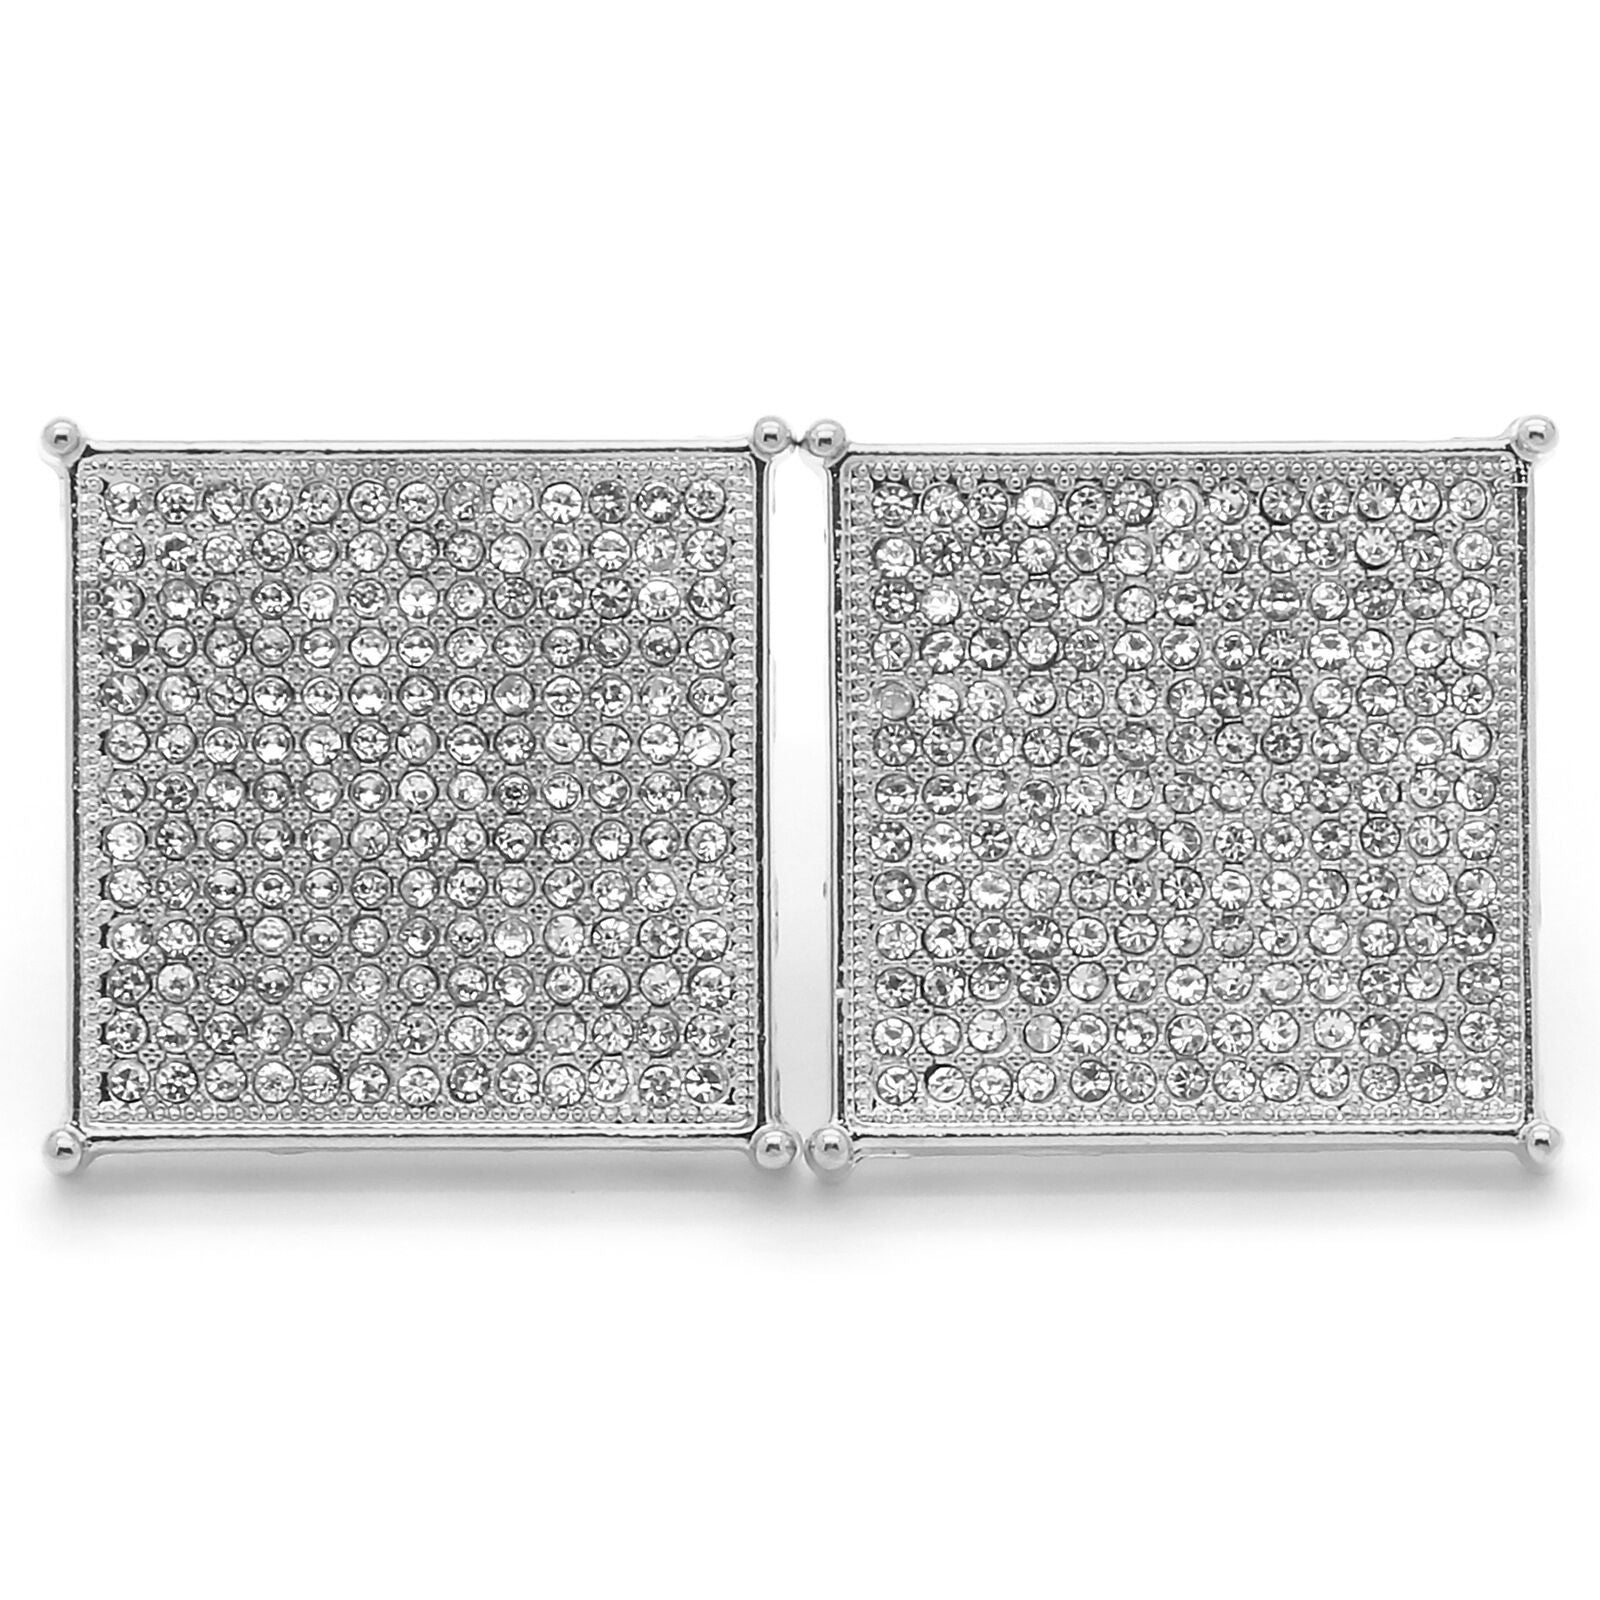 Silver Cz Flat Square Kite 13 Row